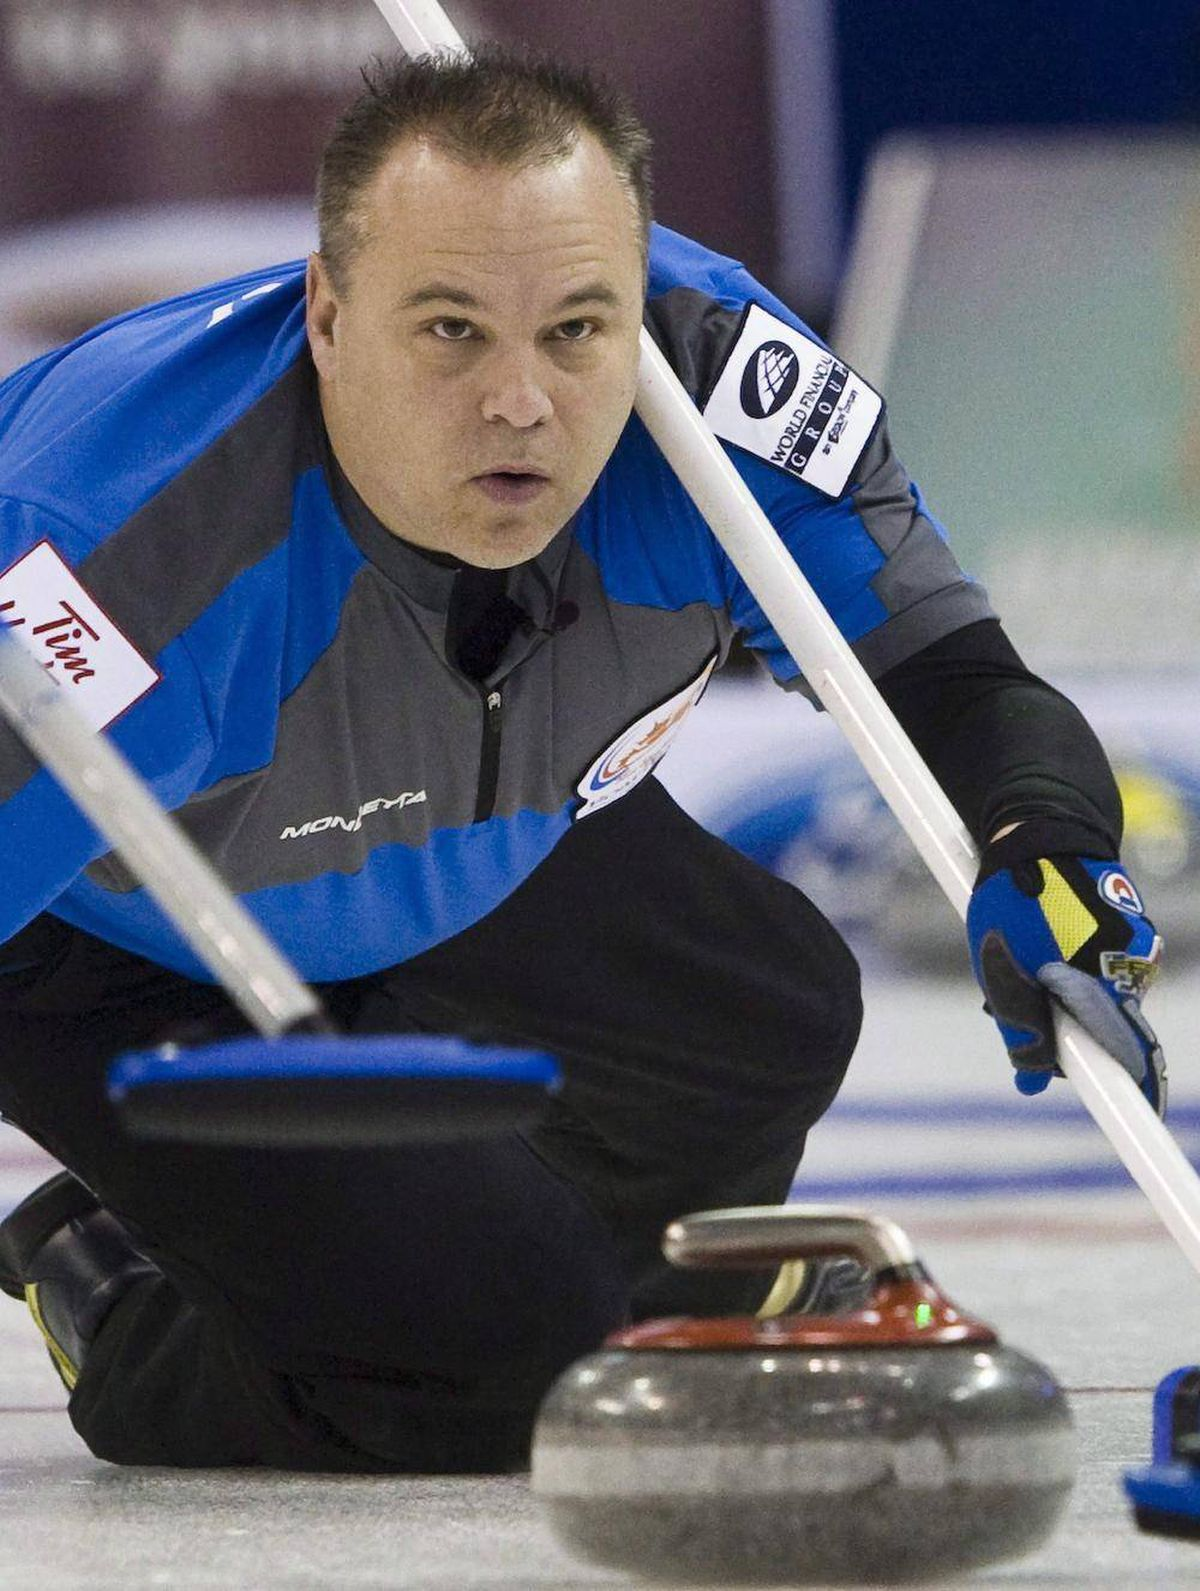 Kamloops Secures The 2014 Brier The Globe And Mail